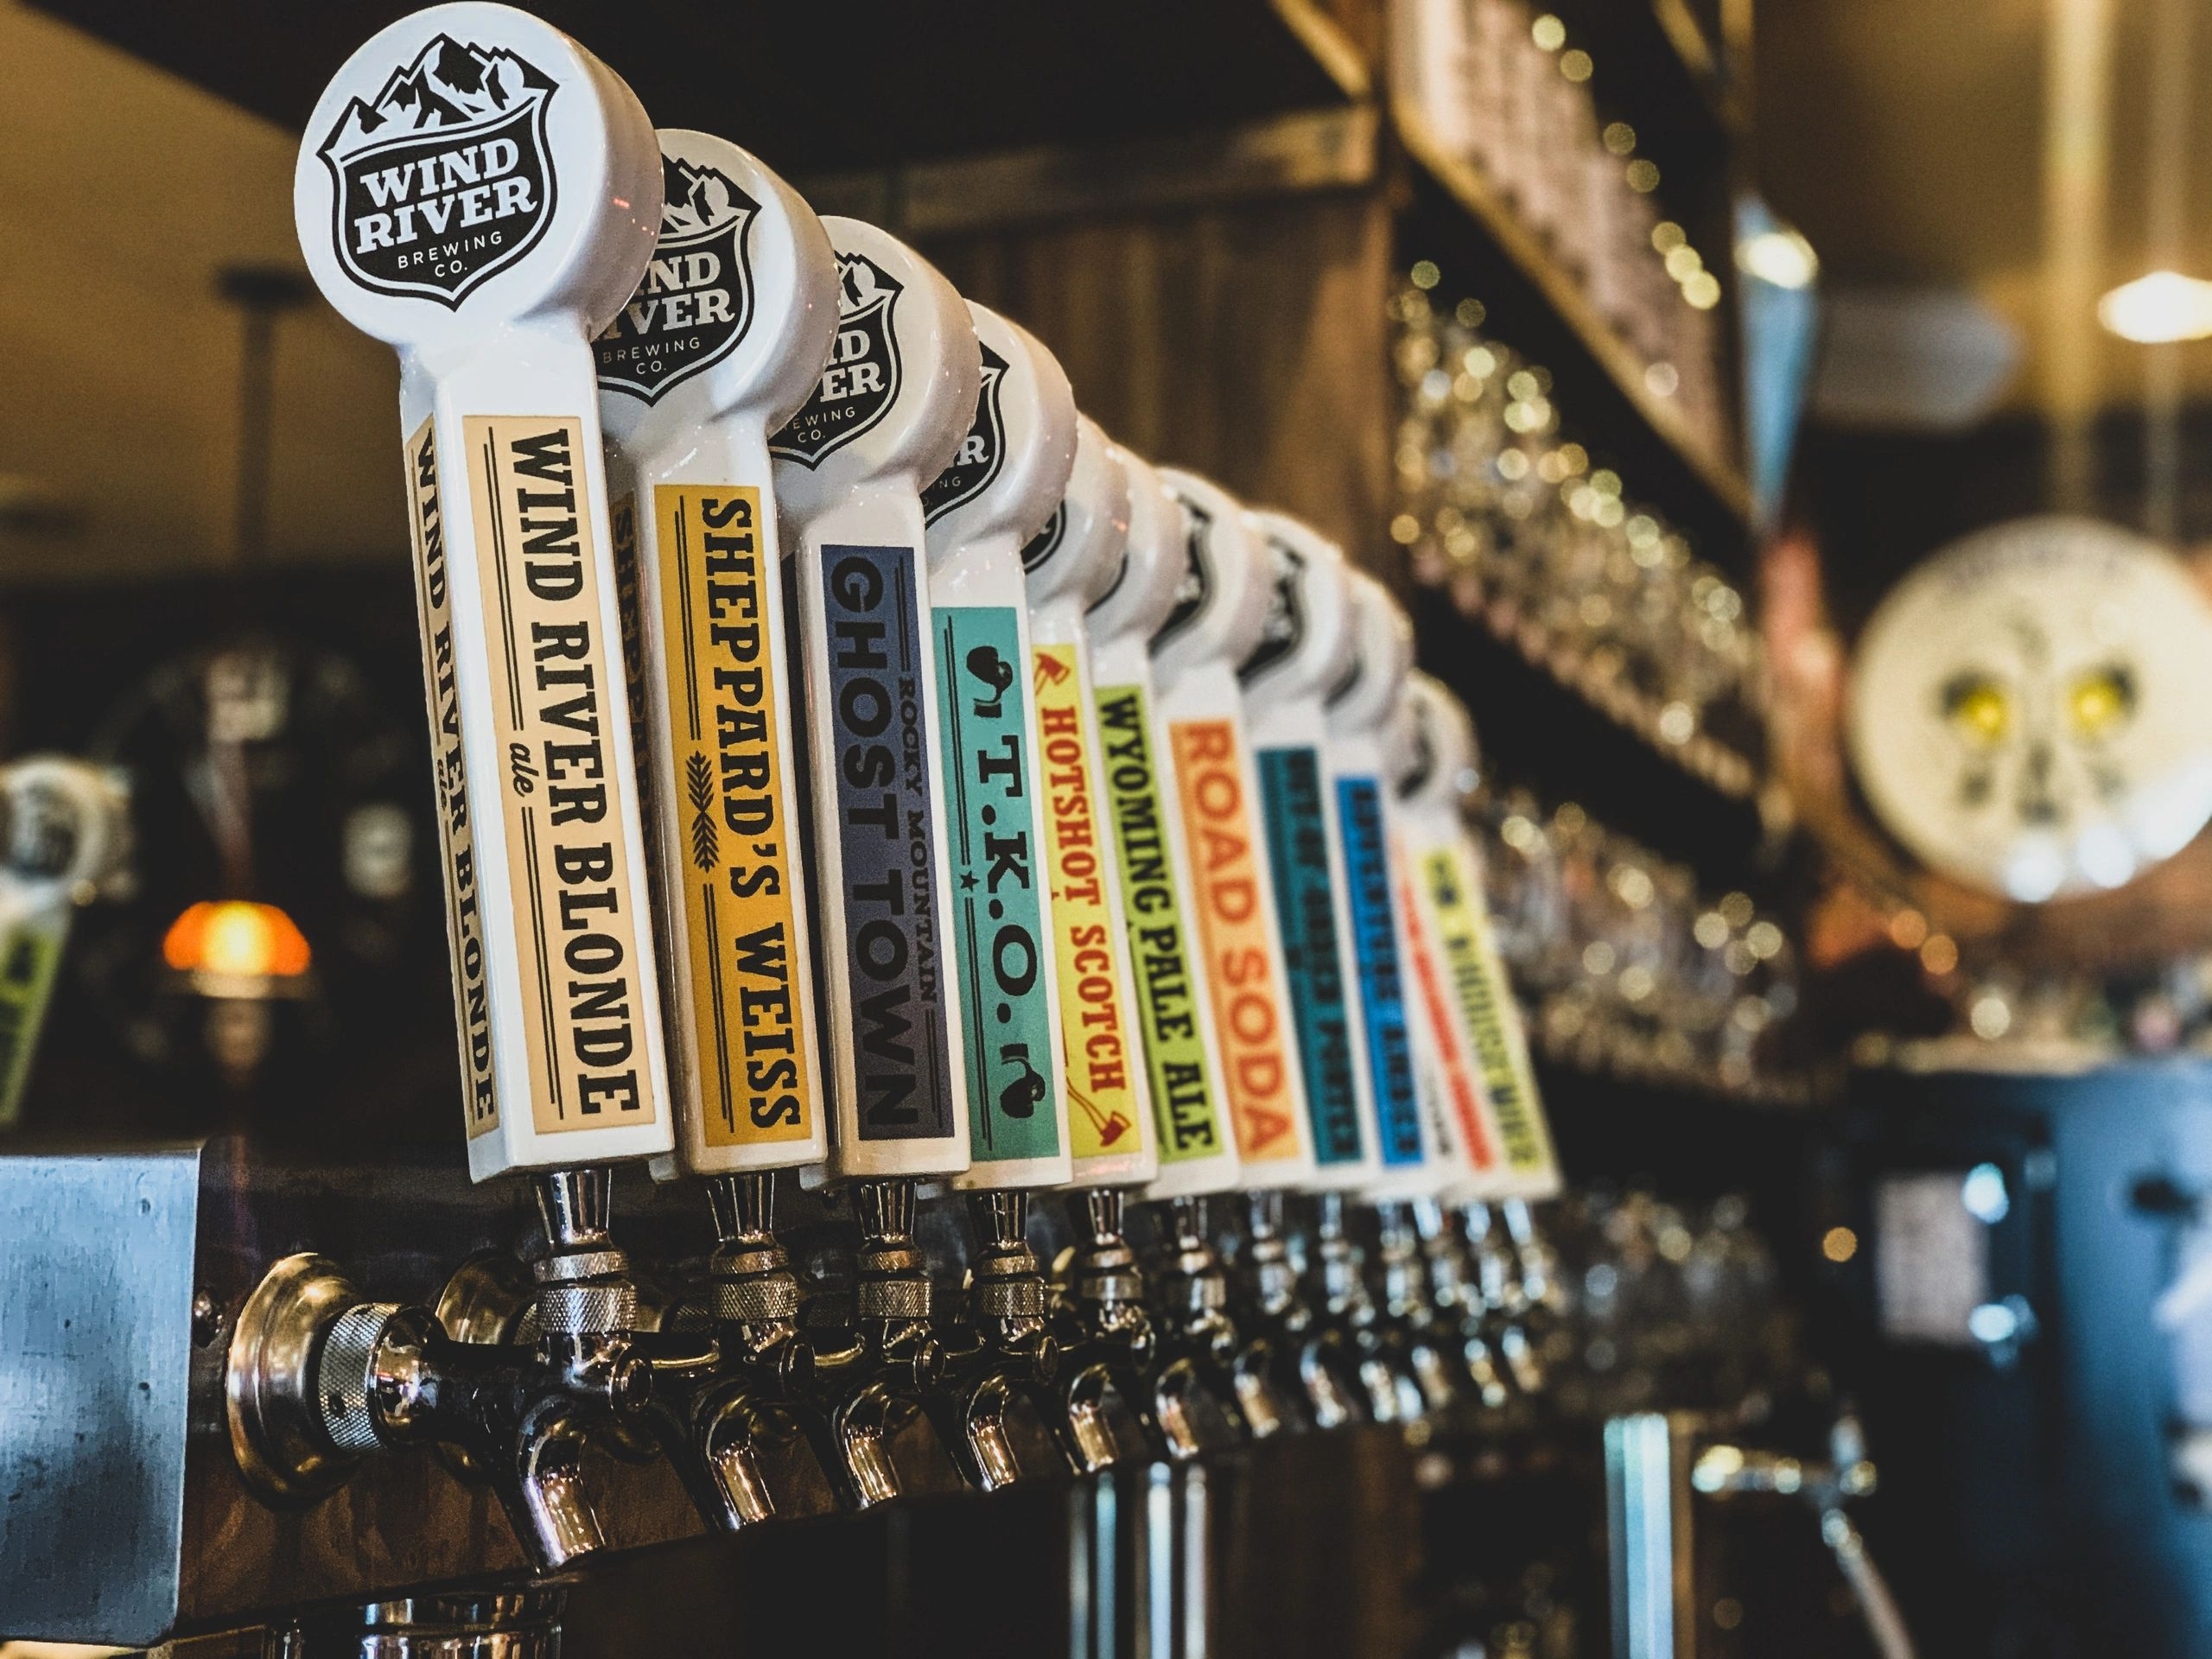 craft beer taps from wind river brewing company